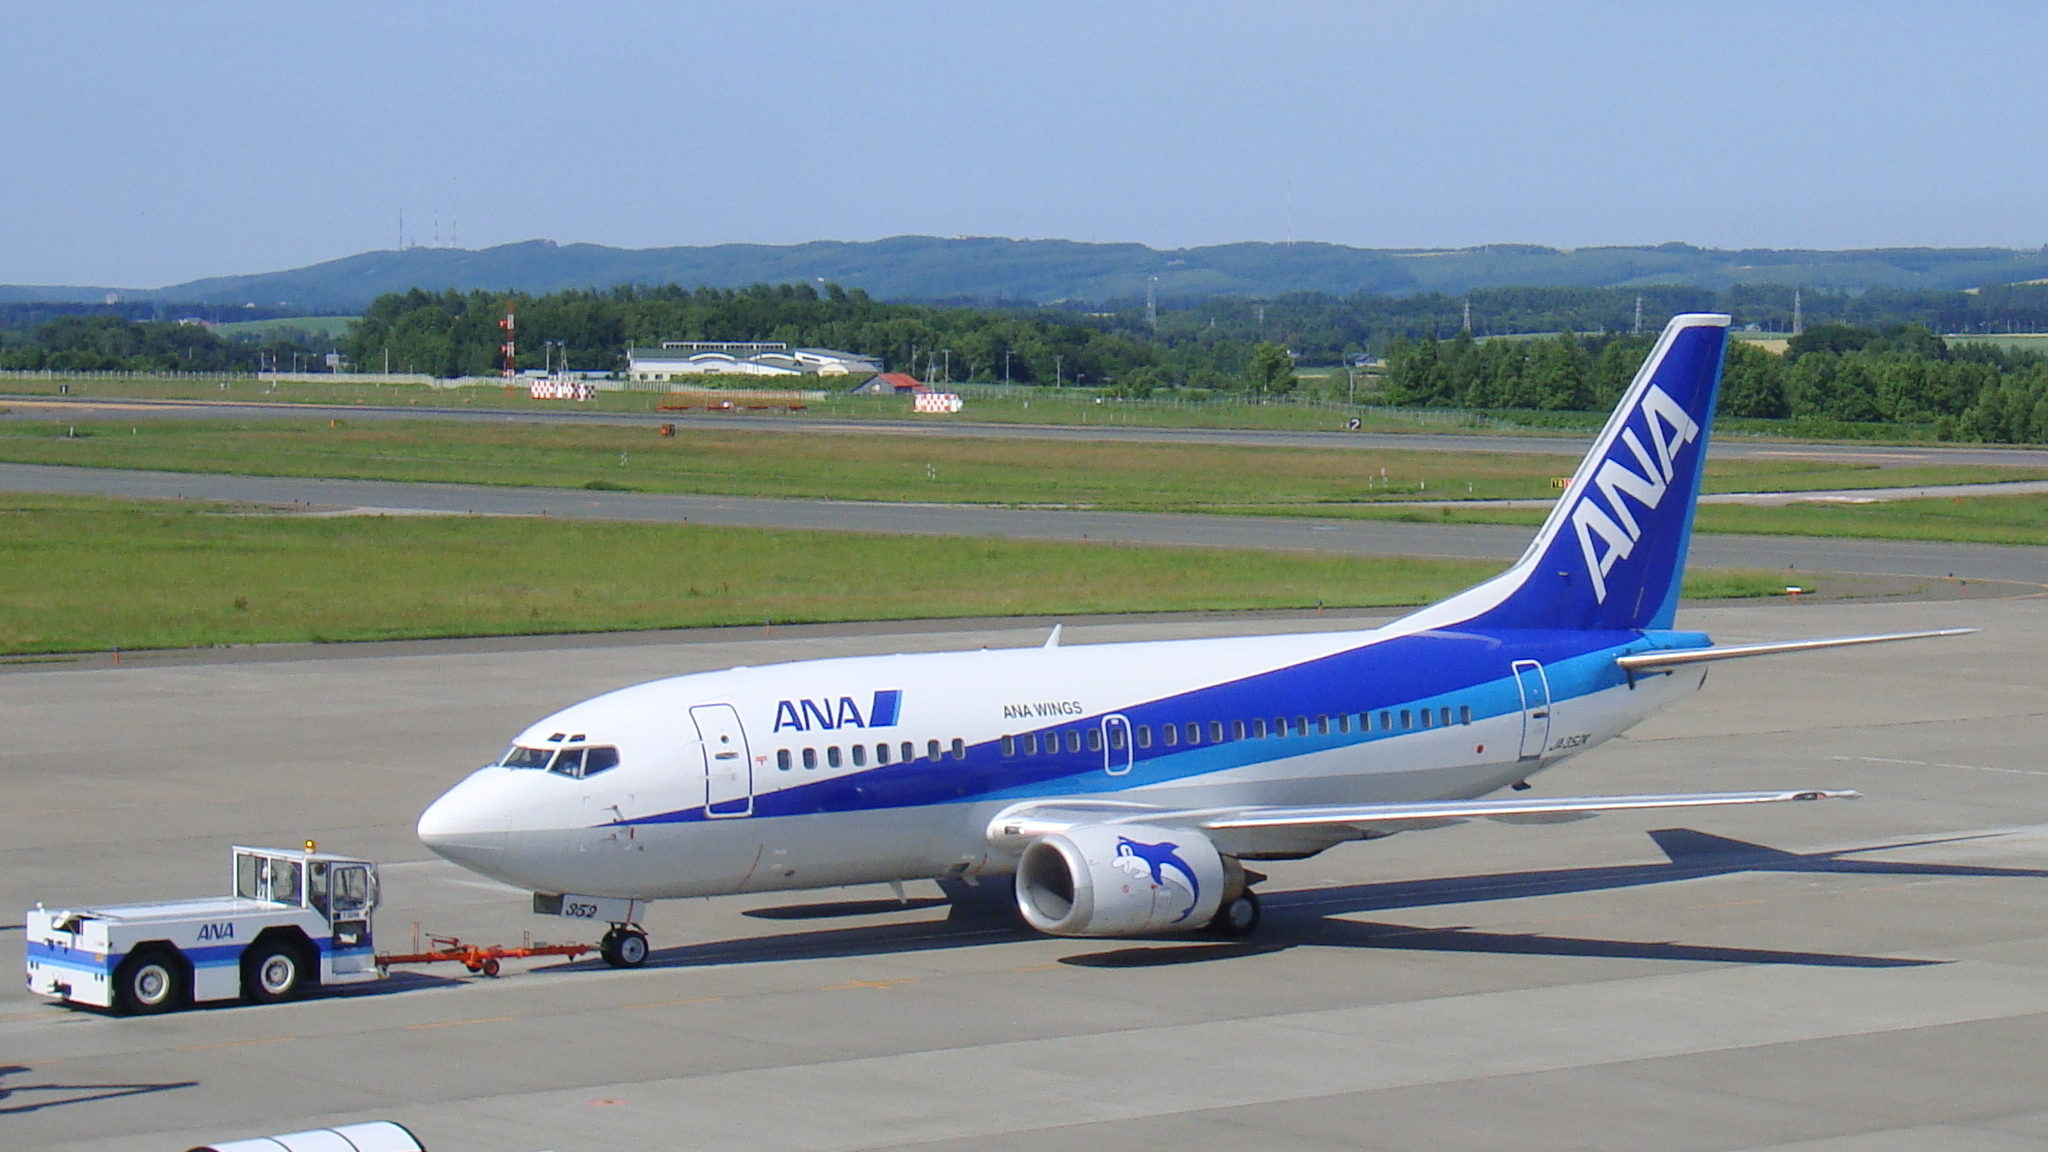 How to book the correct ANA ticket to prevent mistakes